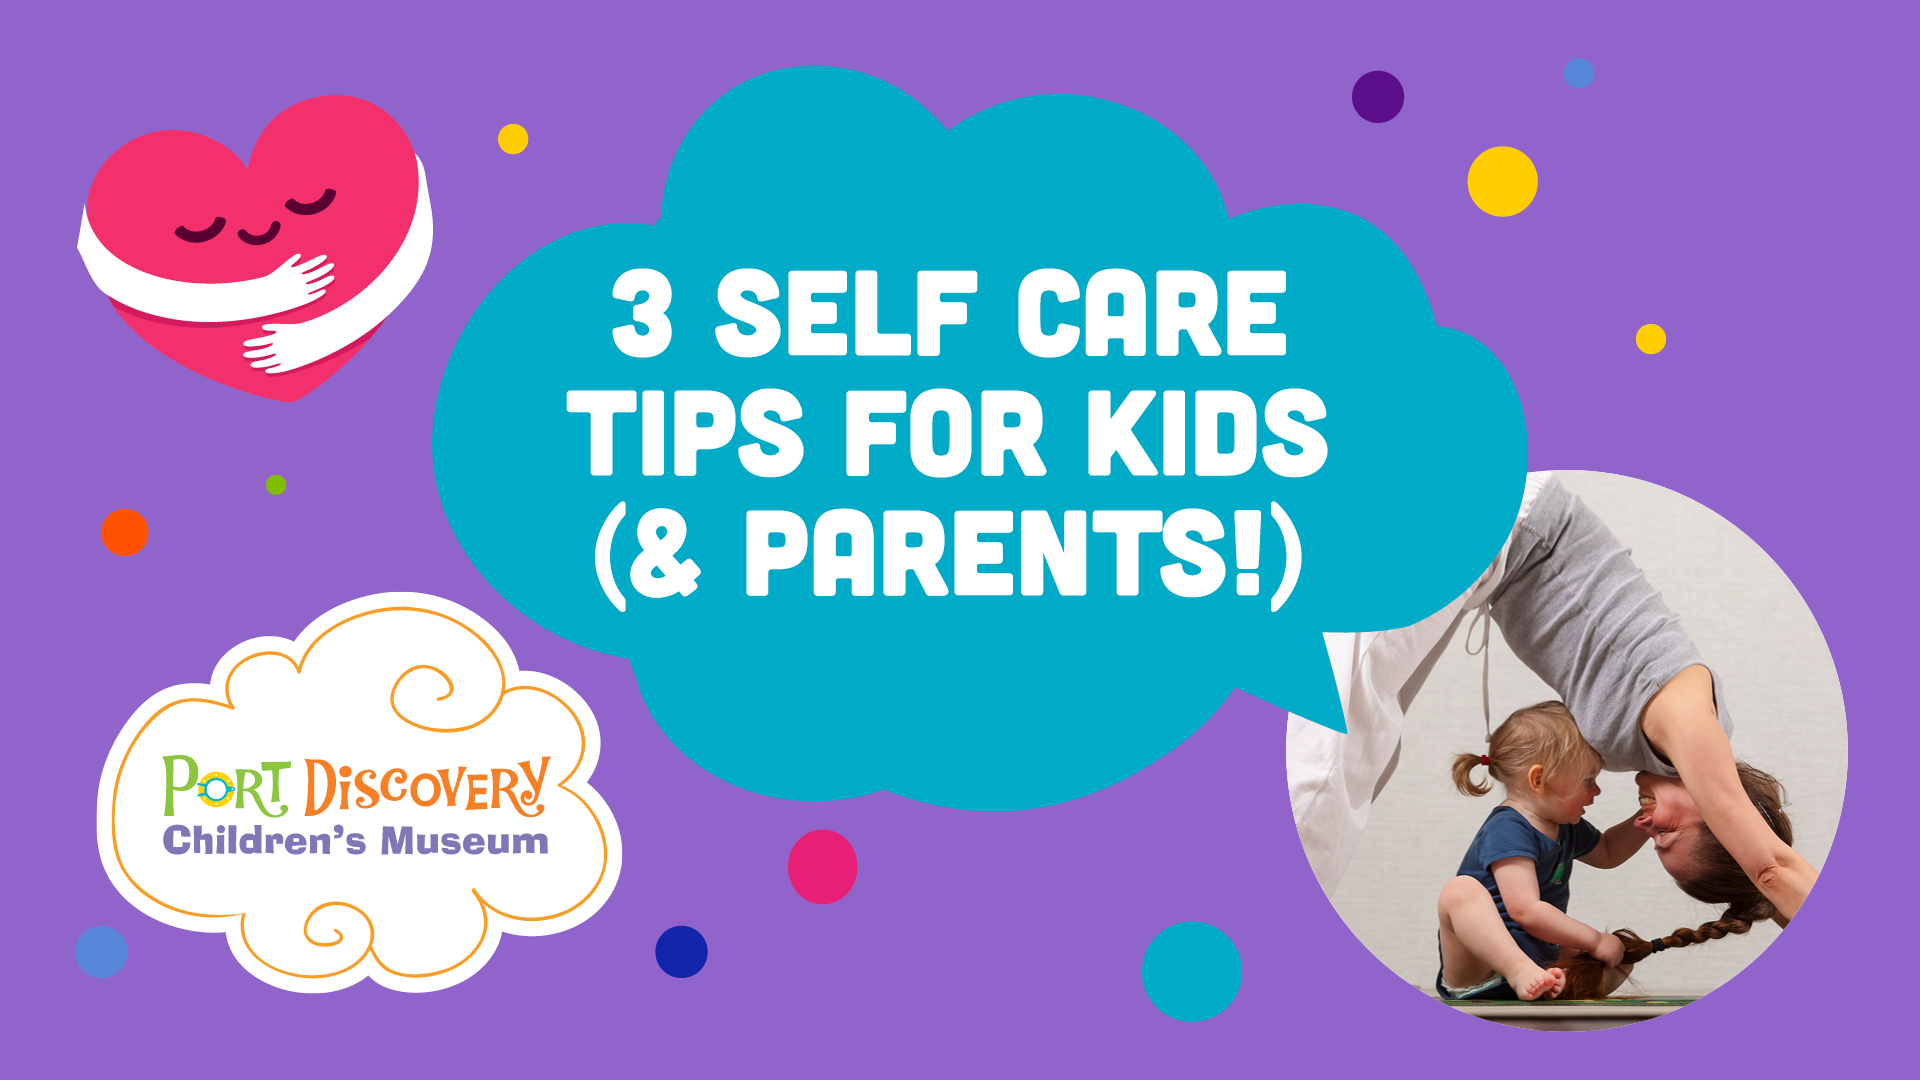 3 Self Care Tips for Kids (& Parents!)